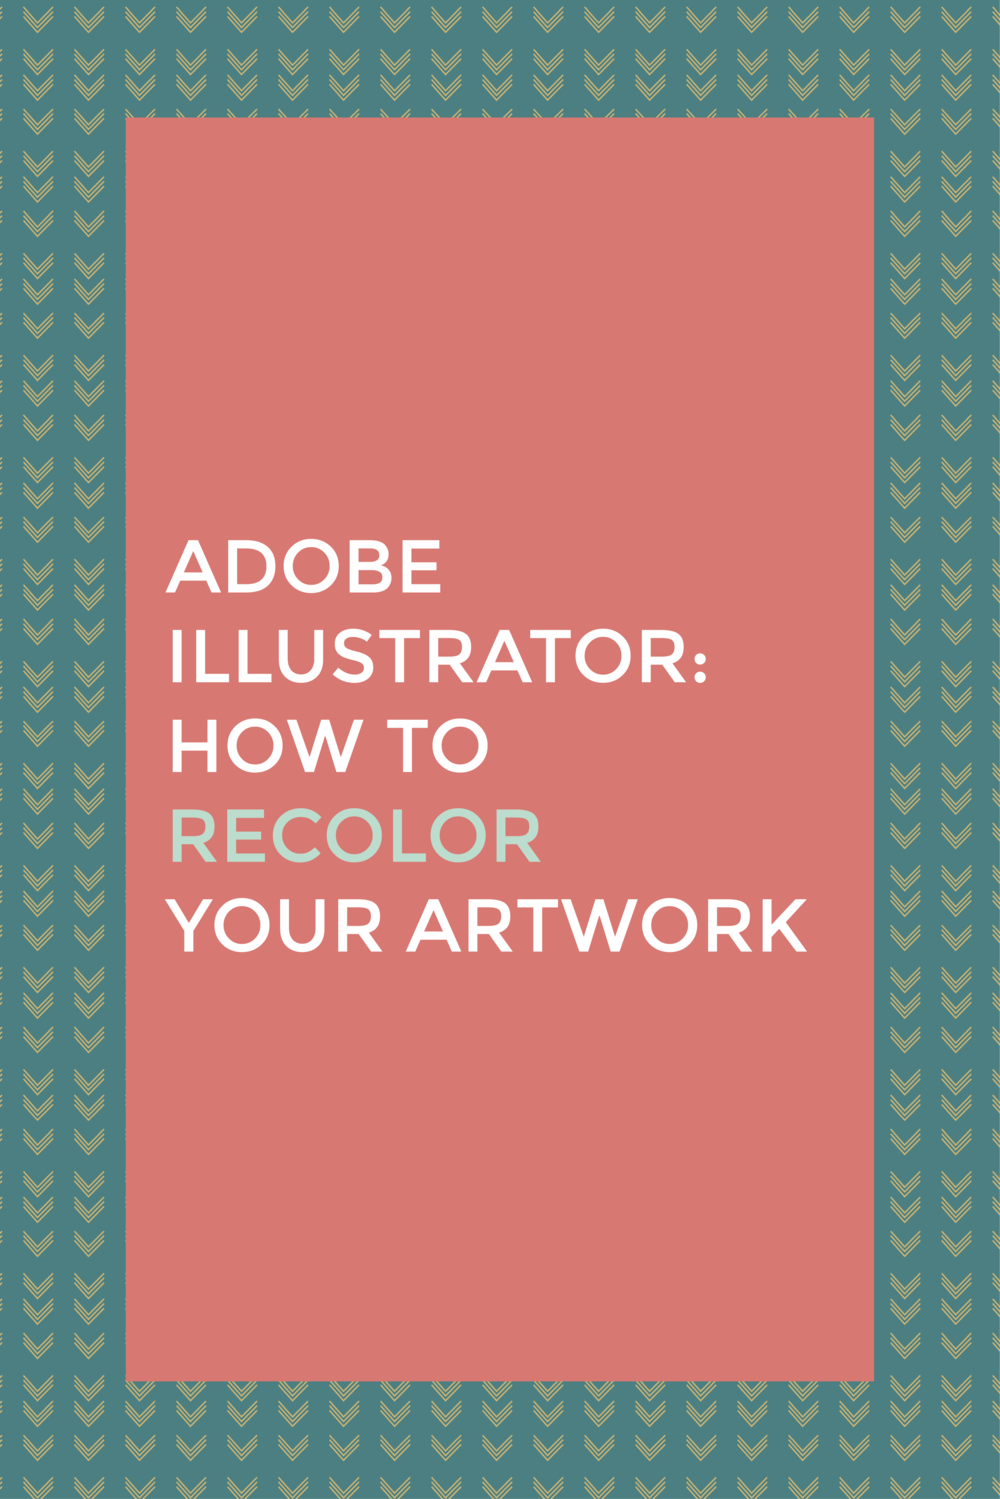 adobe illustrator how to recolor your artwork-02-02.png